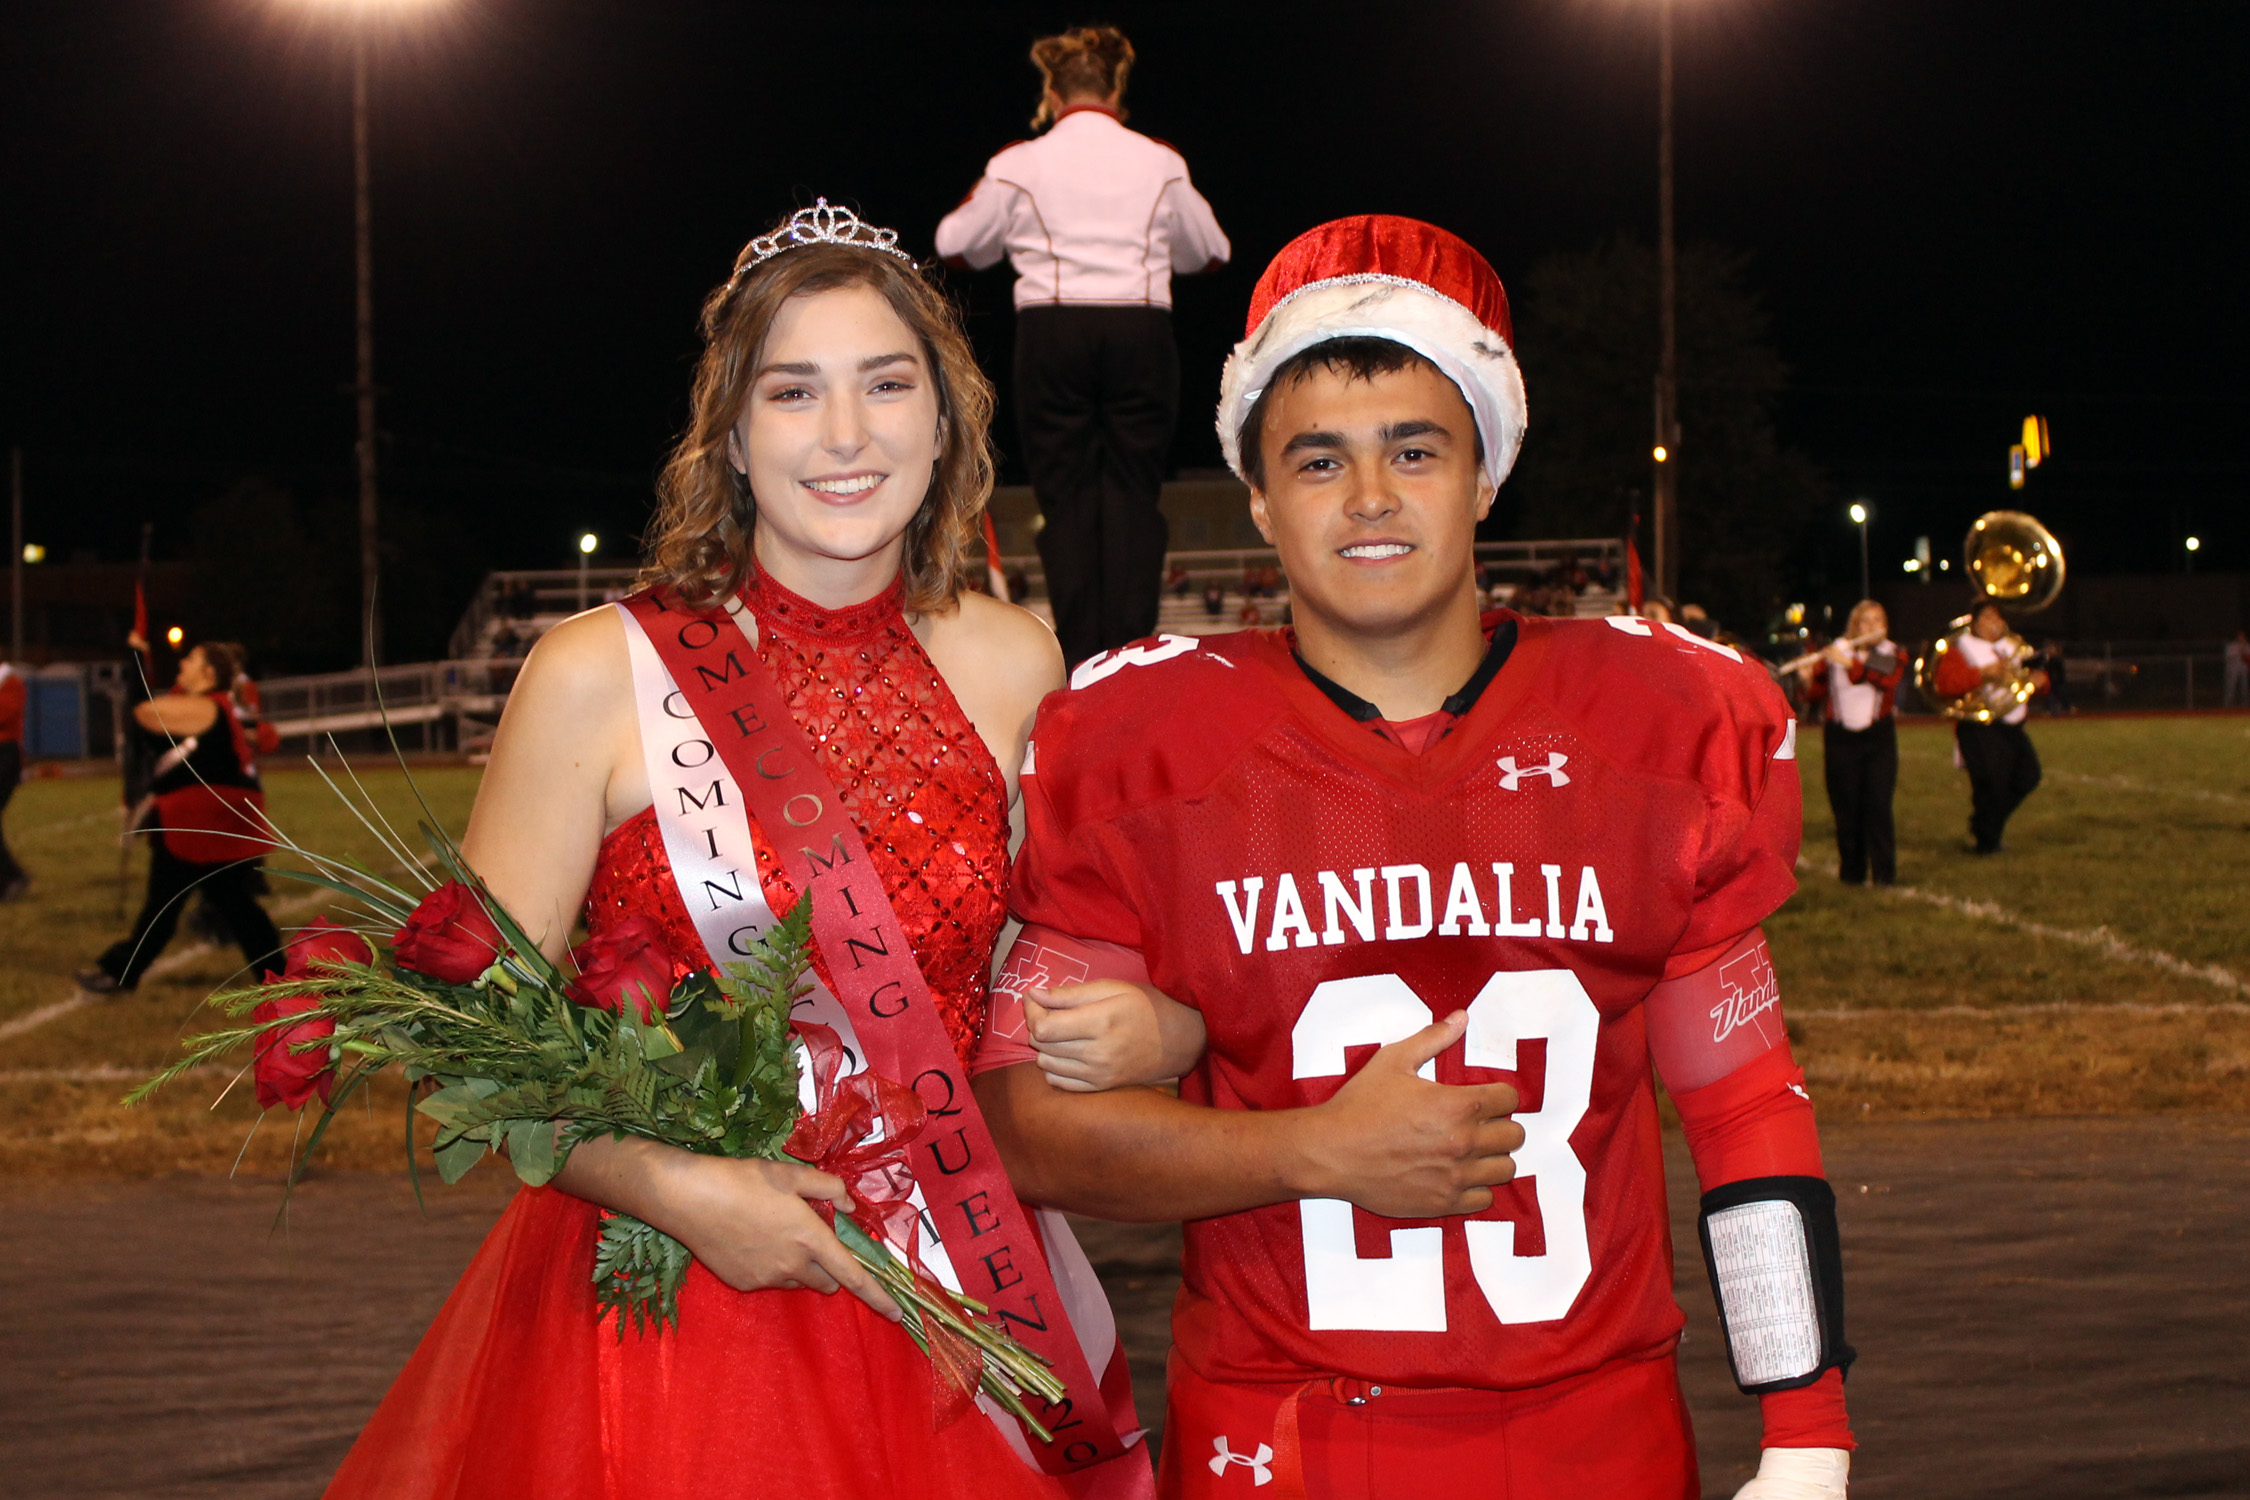 Taylor & Zimmerman VCHS Homecoming King and Queen for 2017